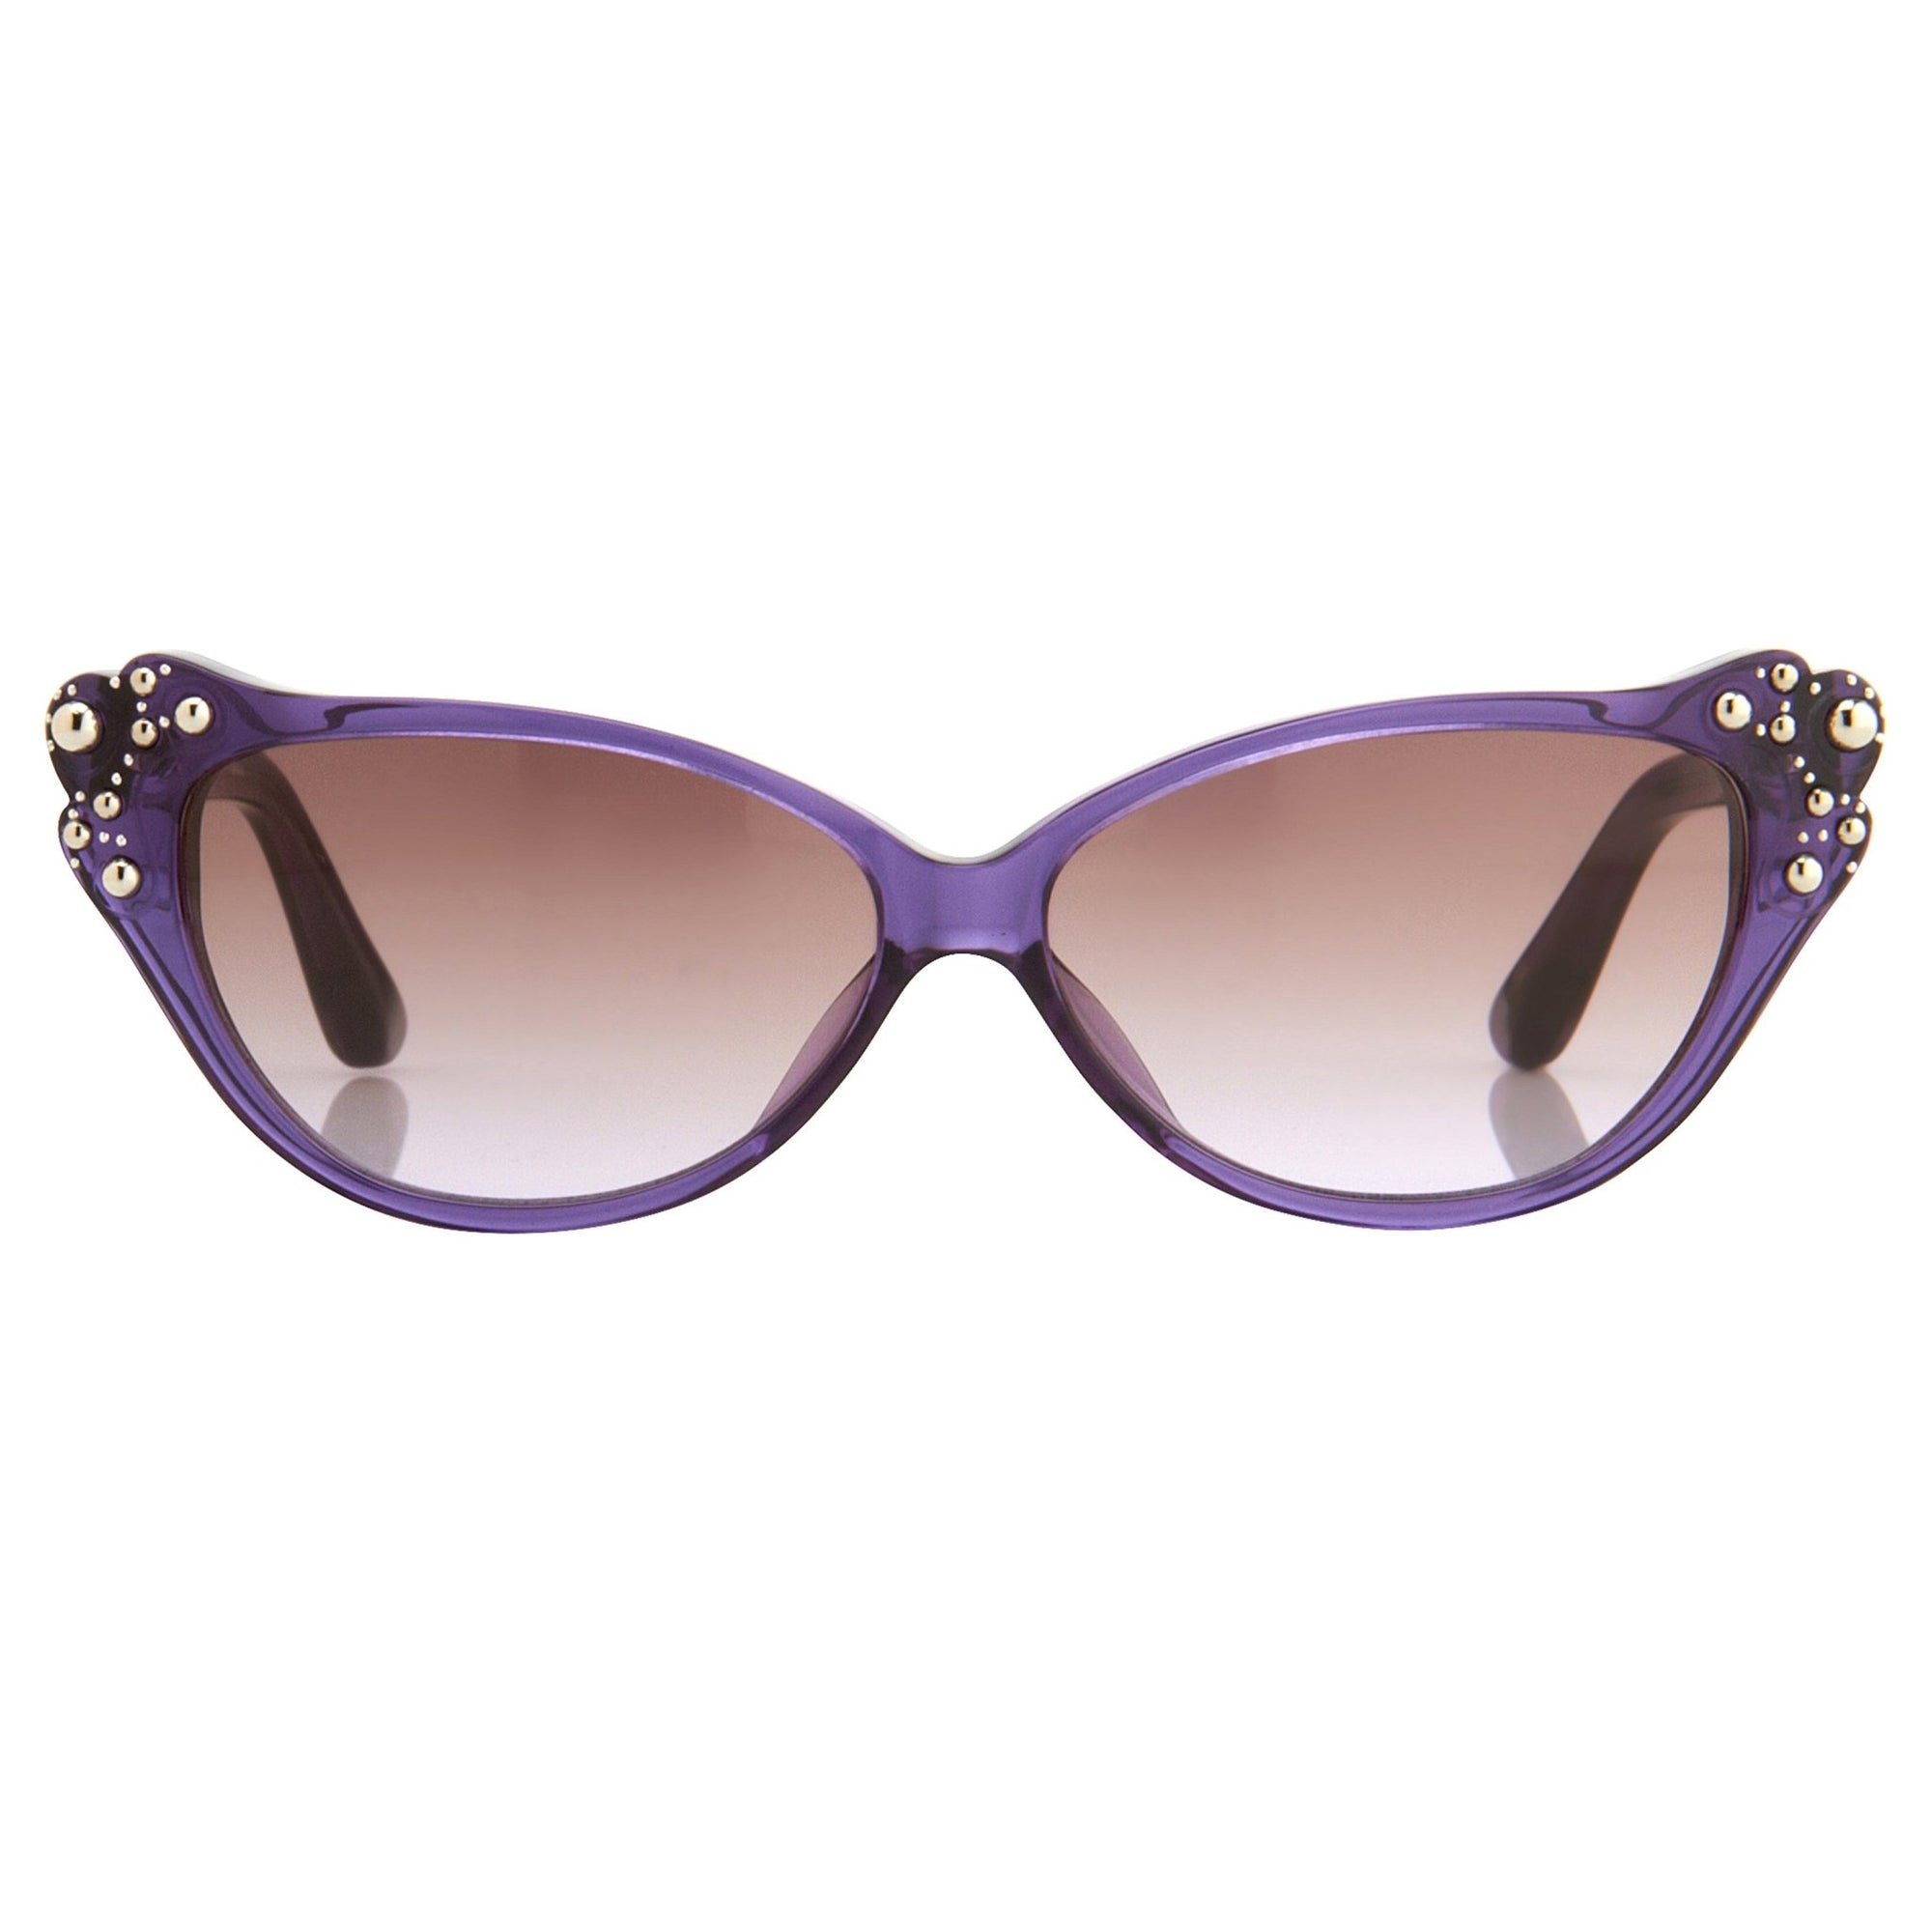 Agent Provocateur Sunglasses Cat Eye Purple and Brown